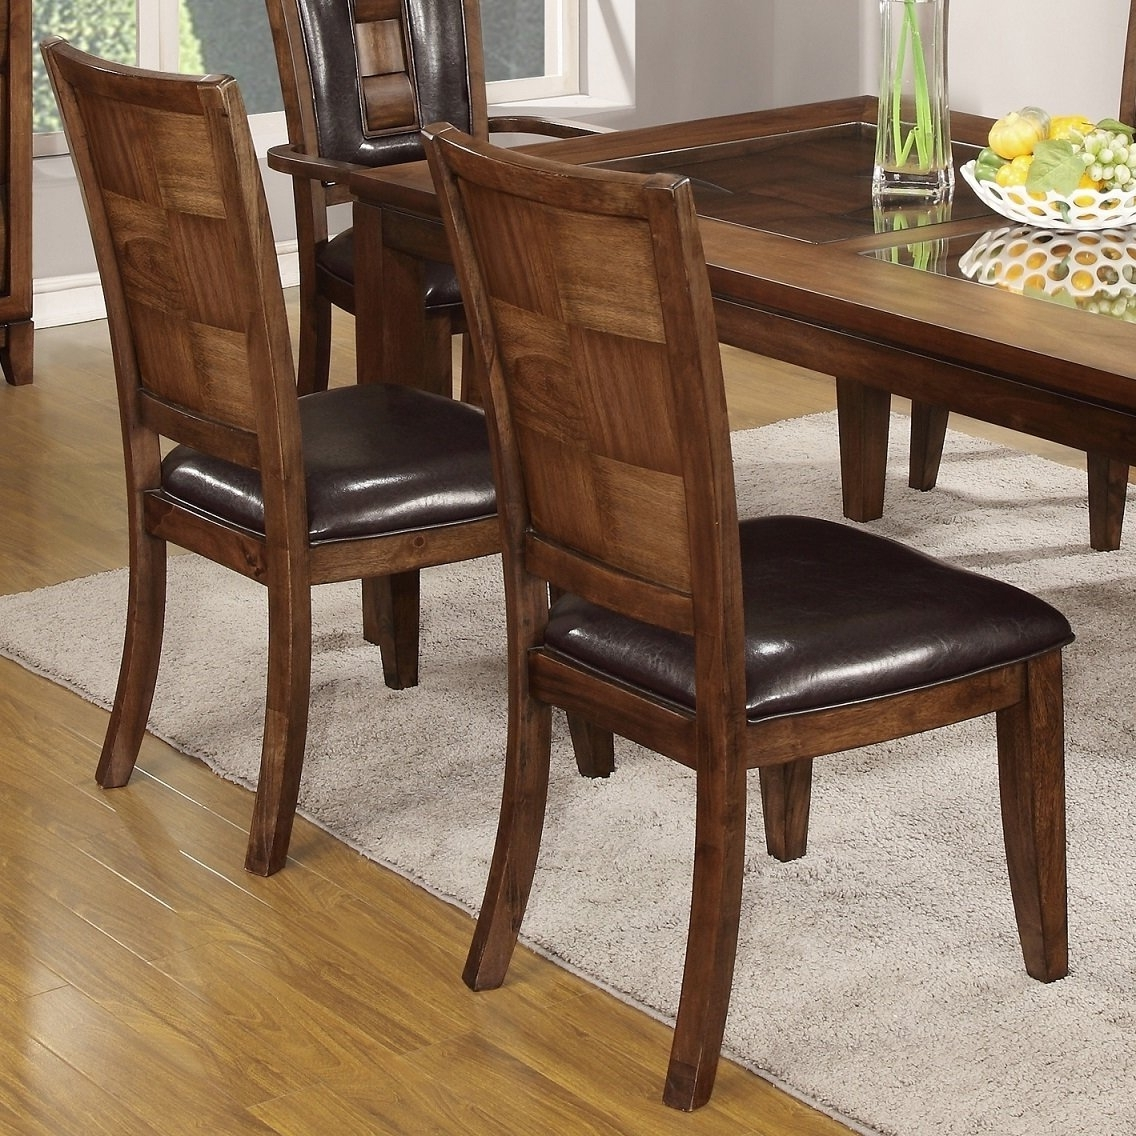 Parquet 6 Piece Dining Sets Intended For Recent Shop Calais 7 Piece Parquet Finish Solid Wood Dining Table With  (View 19 of 25)